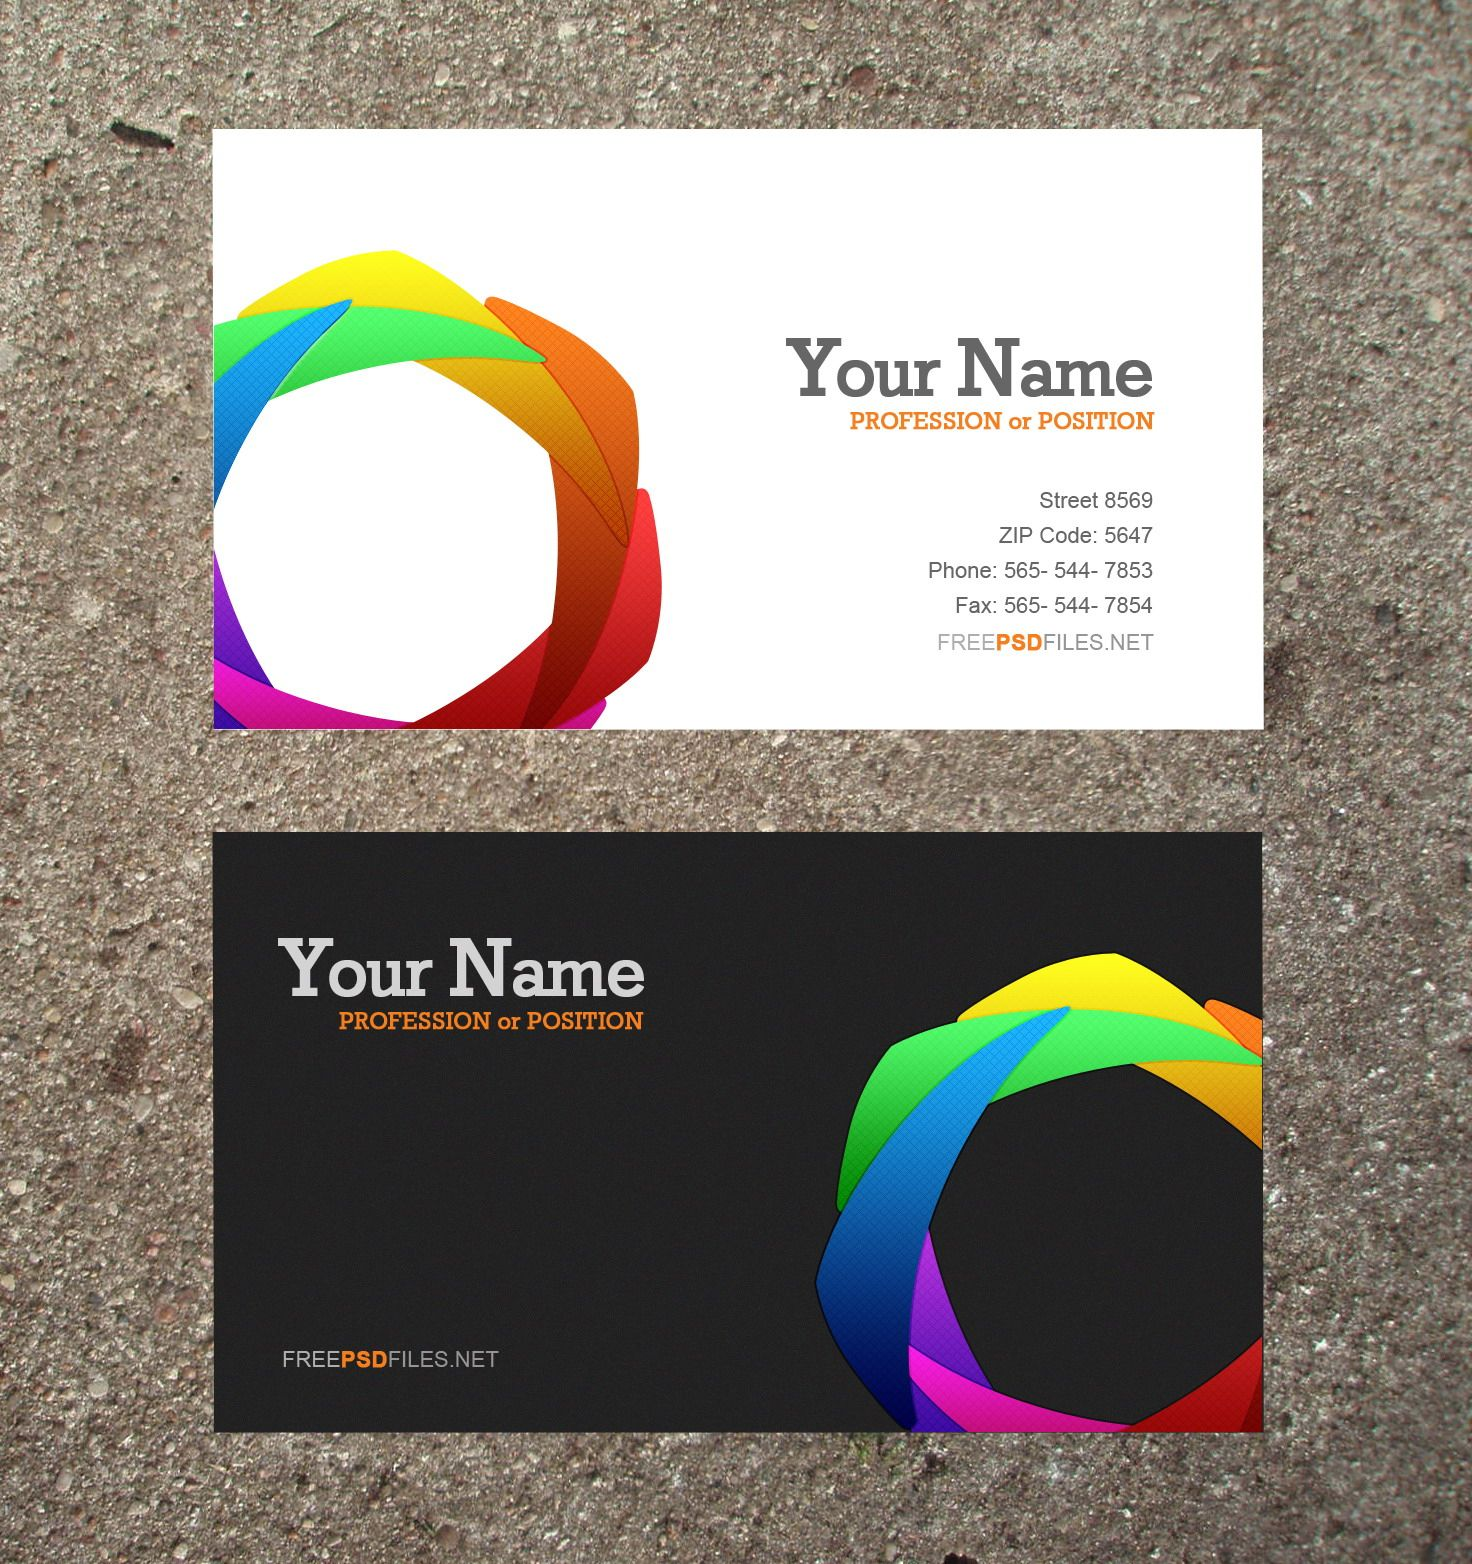 16 Business Card Templates Images Free Business Card In Microsoft Templates For Business Card Template Word Business Card Software Business Card Template Psd